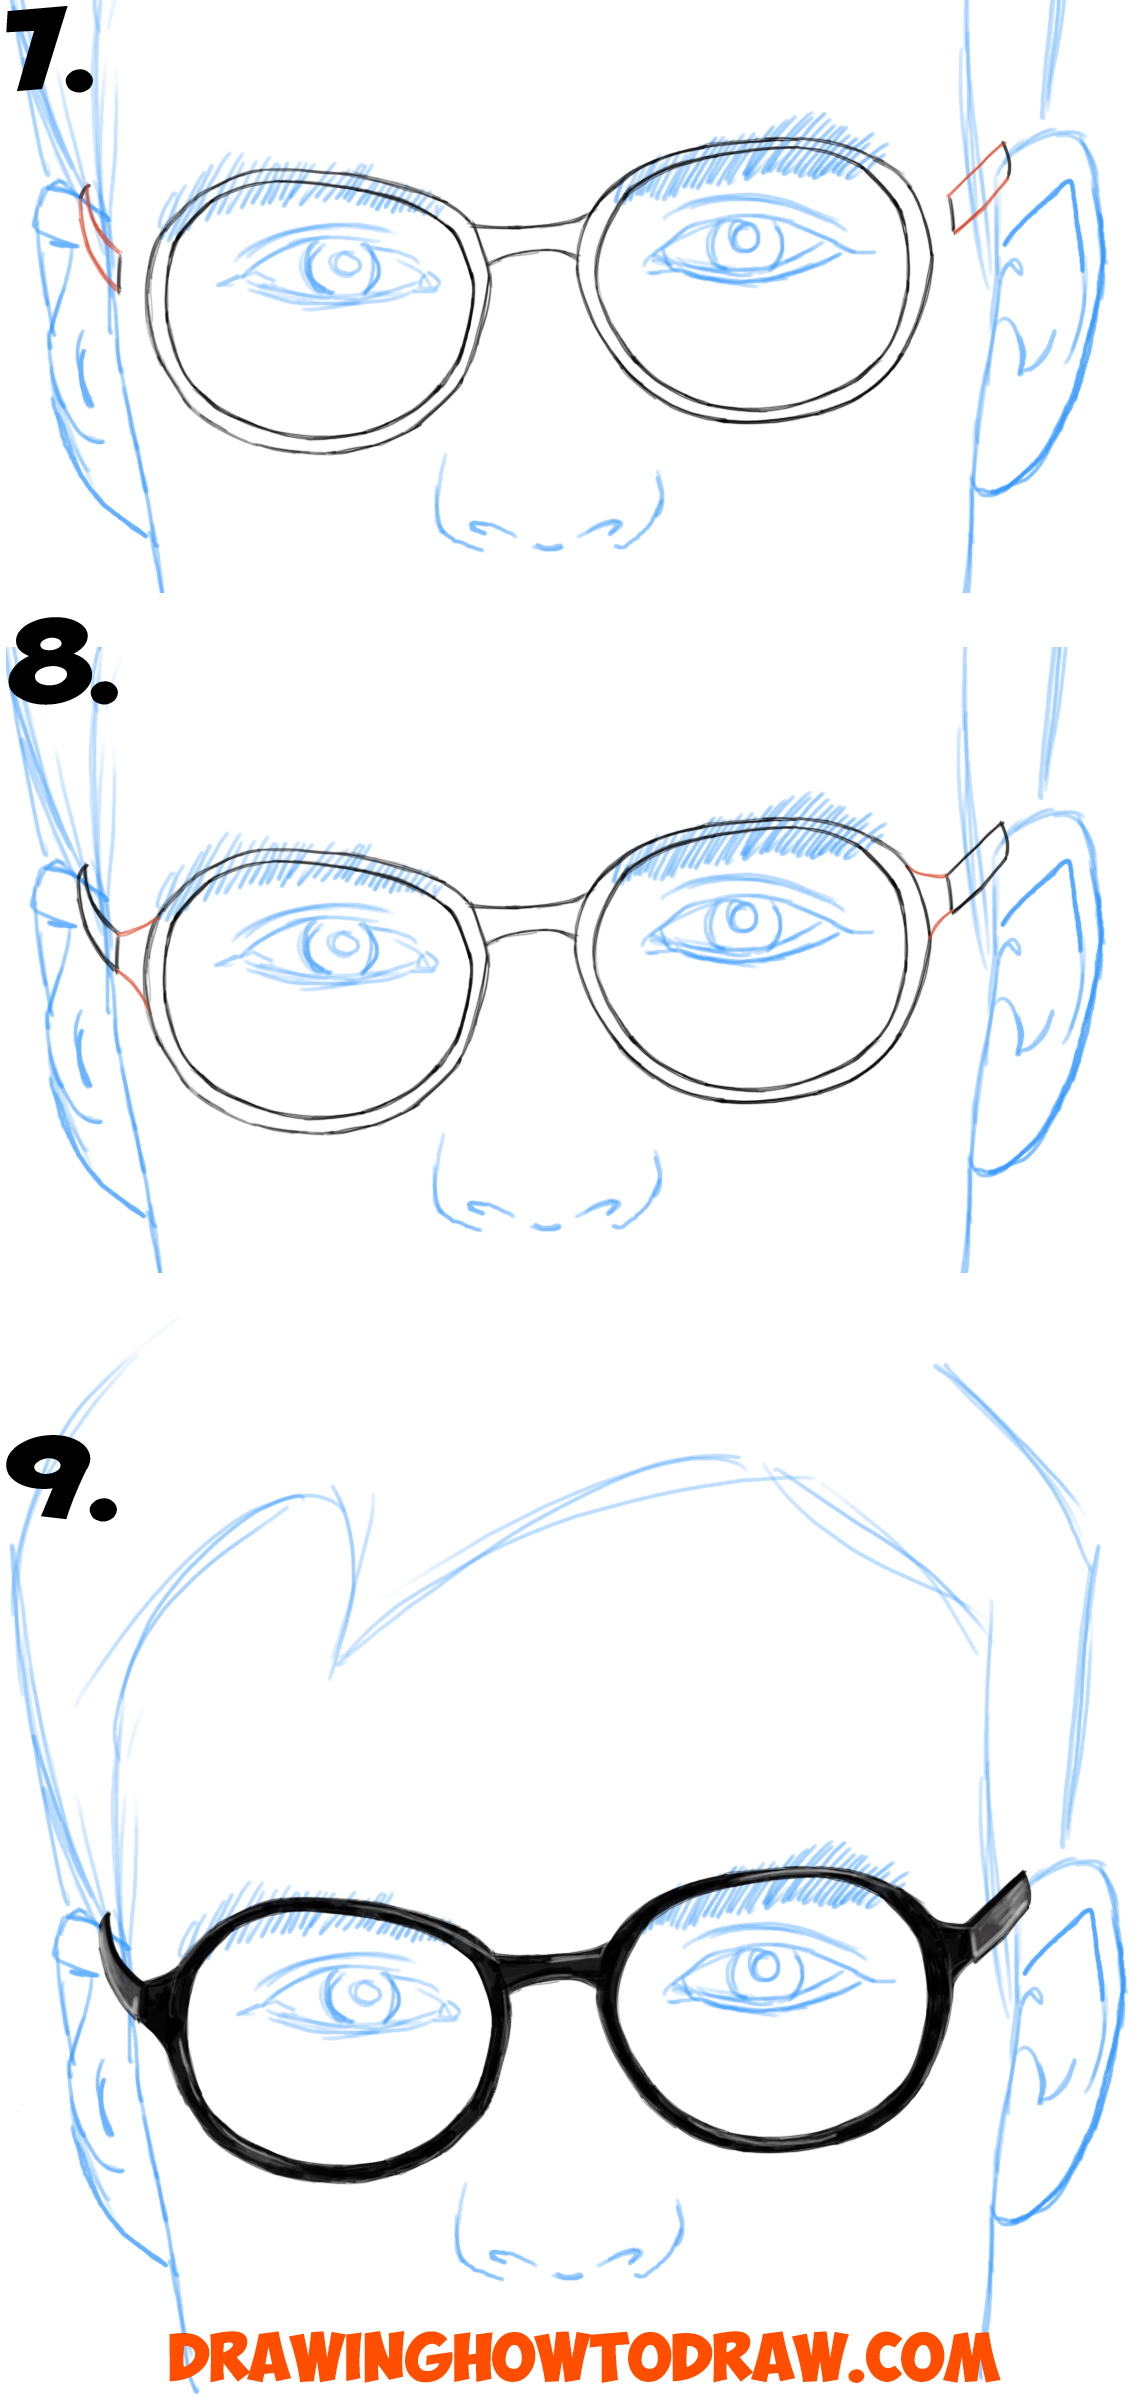 Scribble Drawing Tutorial : How to draw glasses on a person s face from all angles